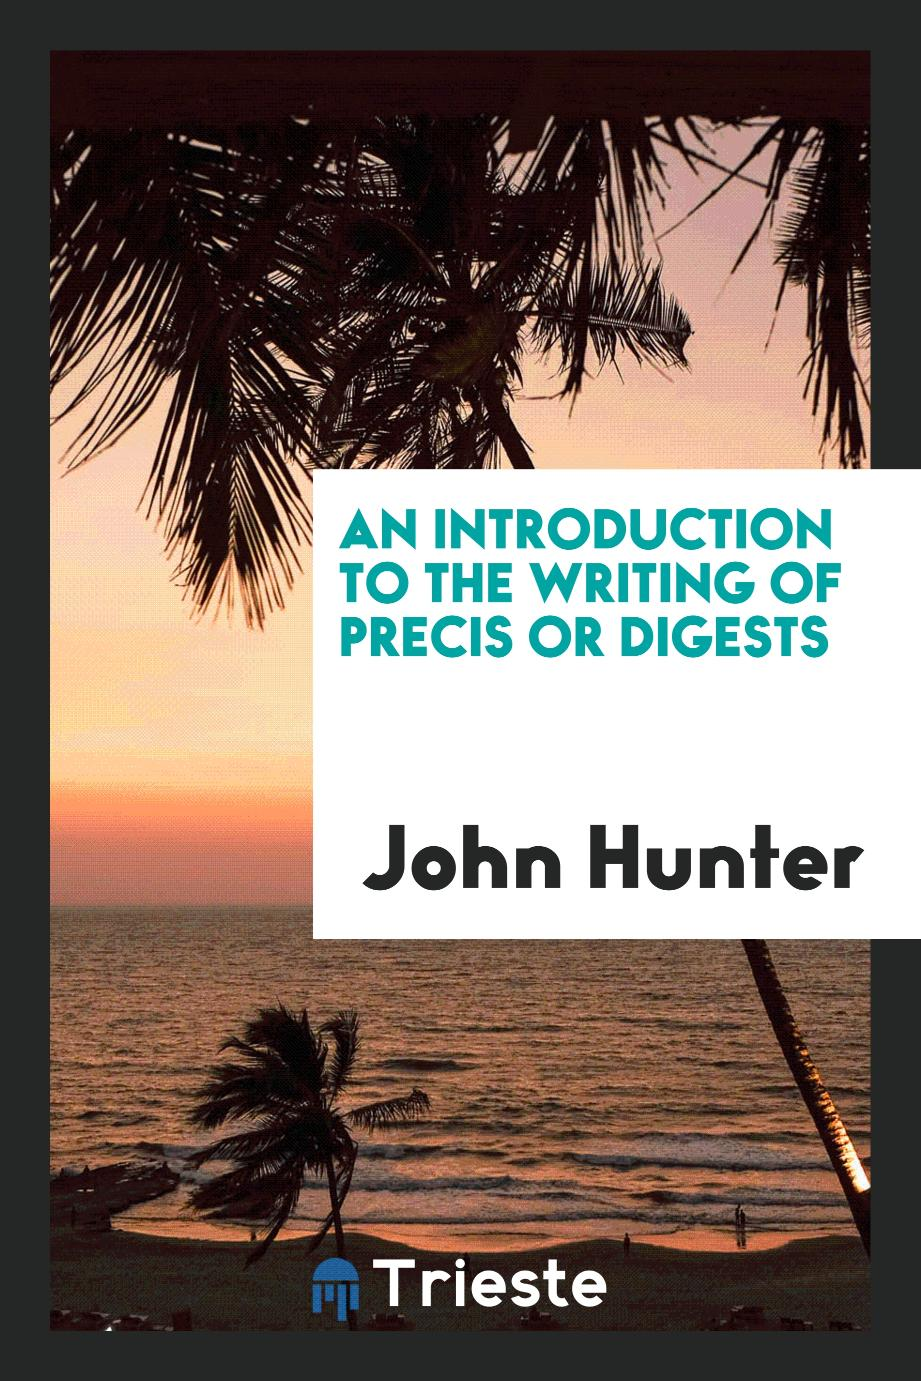 An Introduction to the Writing of Precis or Digests